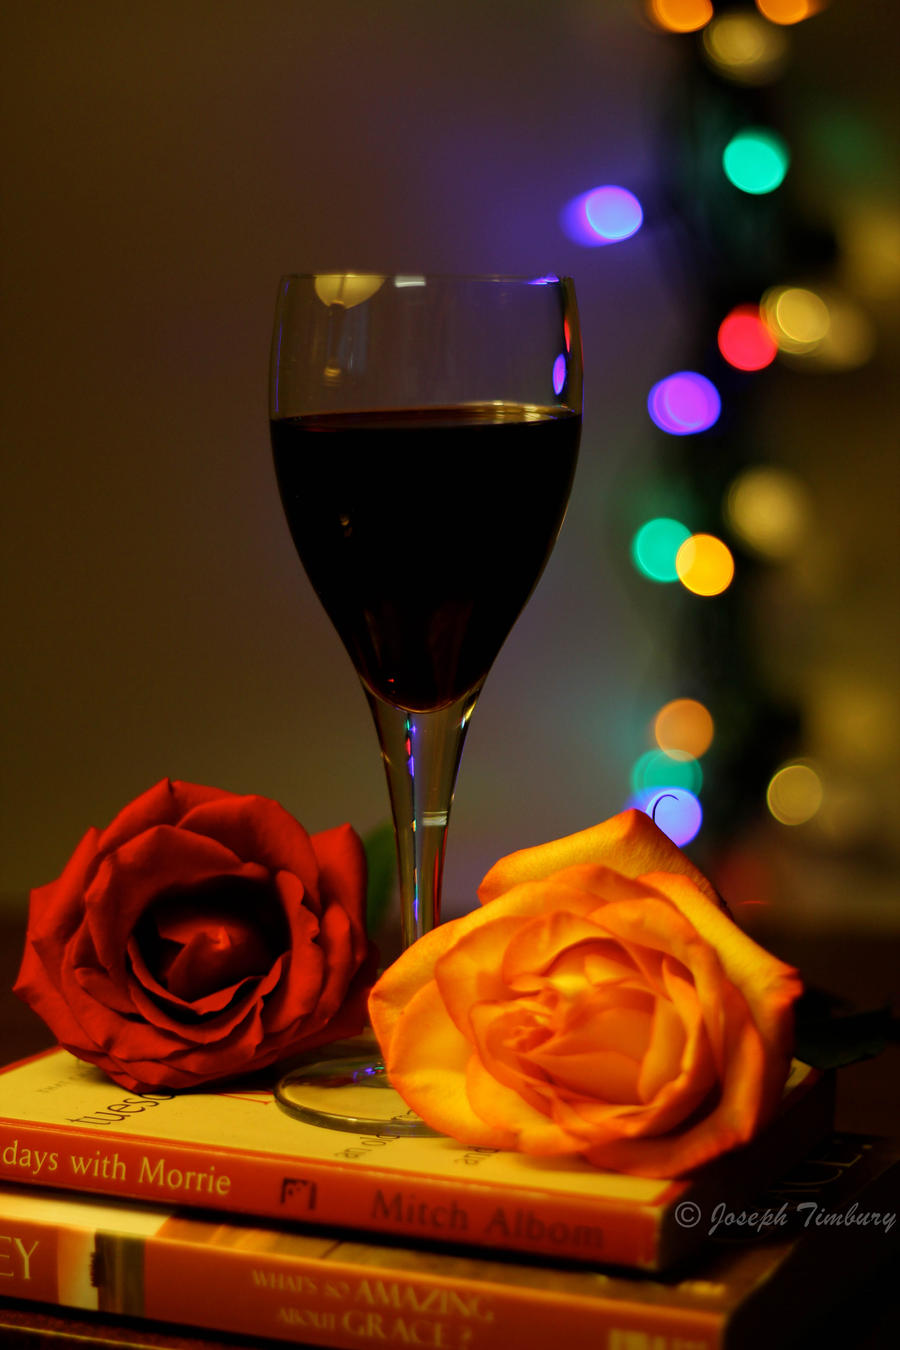 Wine. Rose. Bokeh. II by JosephTimbury